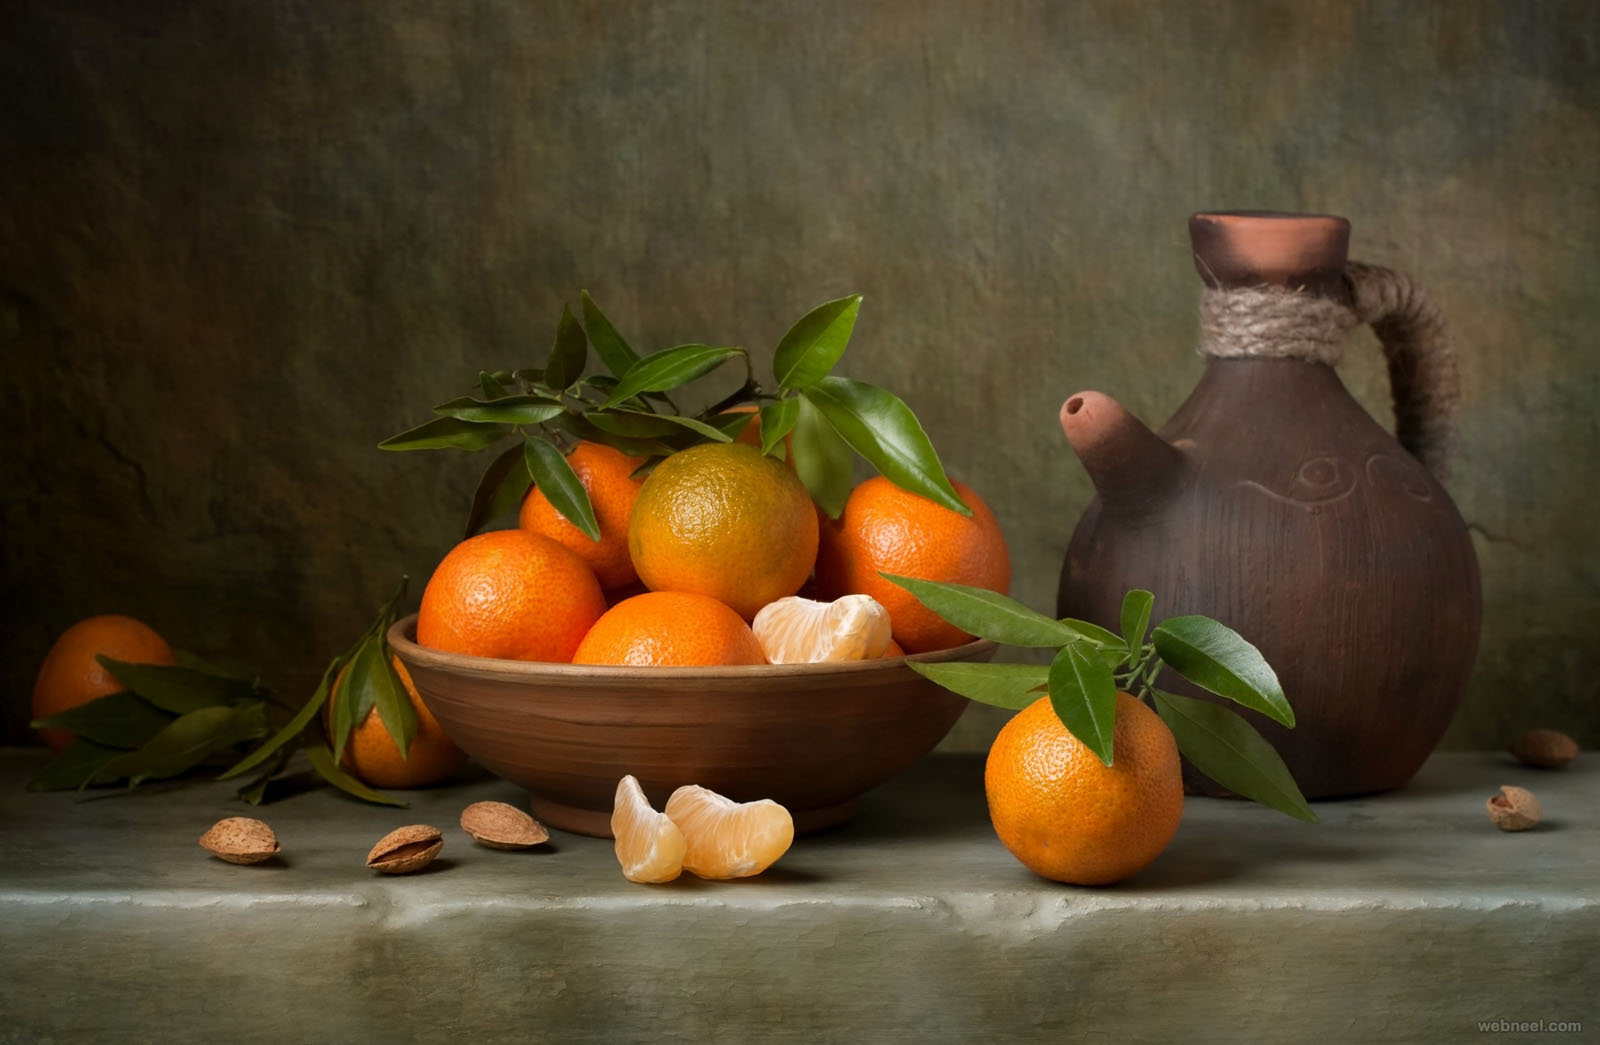 fruits still life photography